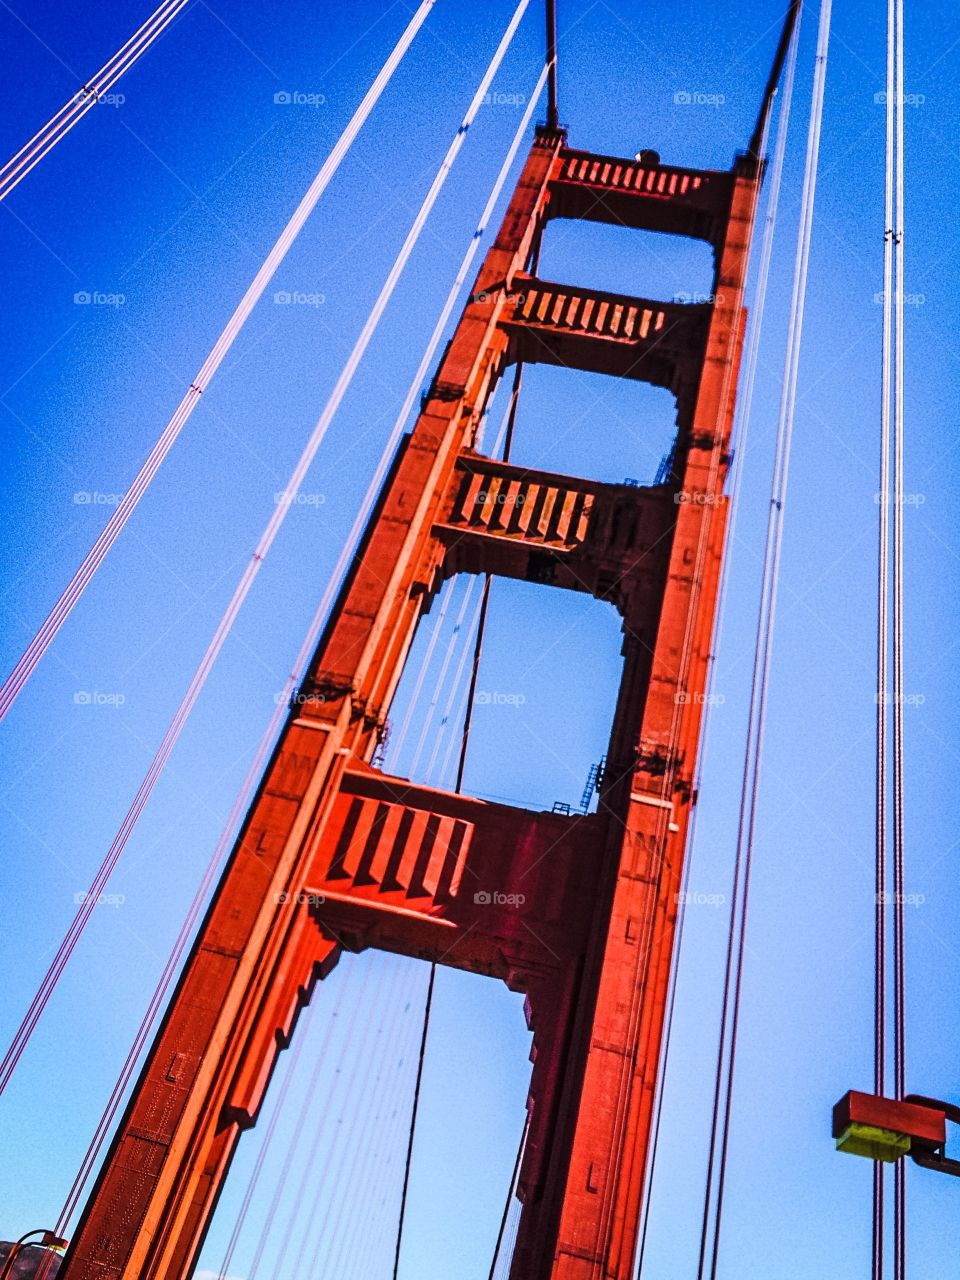 The golden gate bridge is one of San Francisco's greatest landmarks.